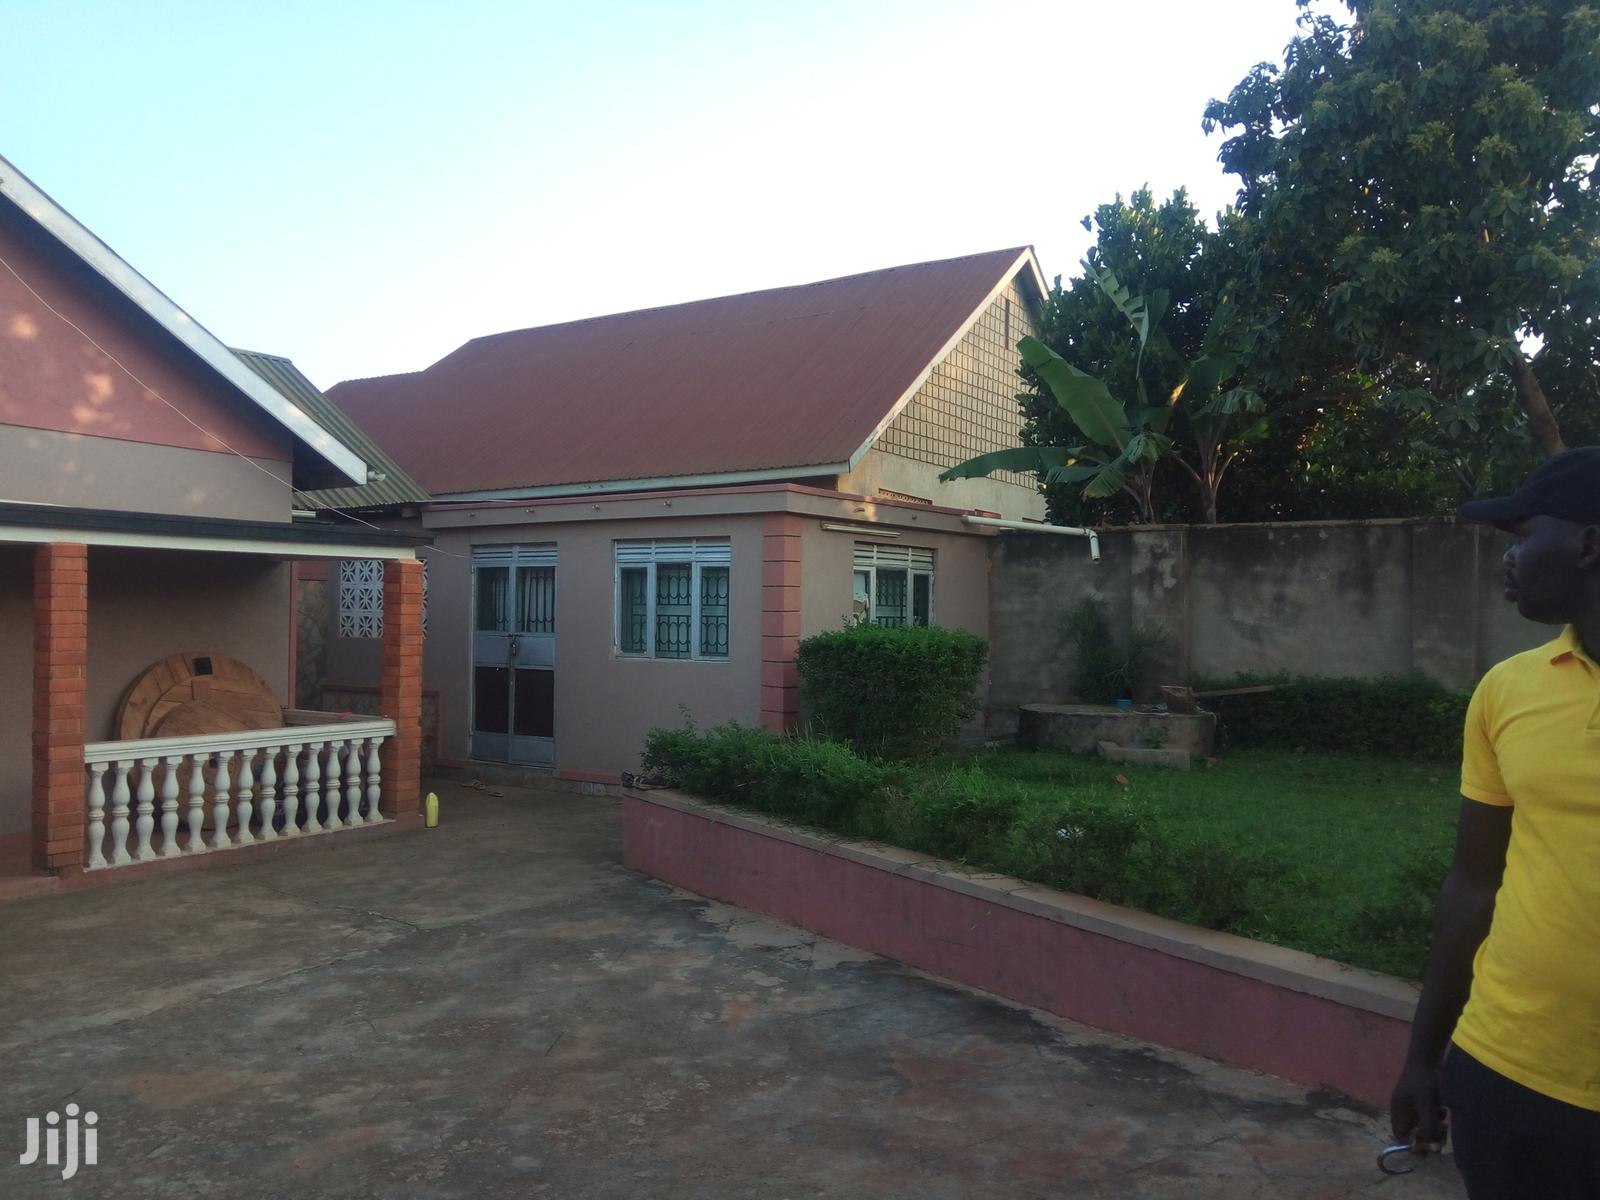 Bungalow In Kyaliwajala For Sale | Houses & Apartments For Sale for sale in Kampala, Central Region, Uganda